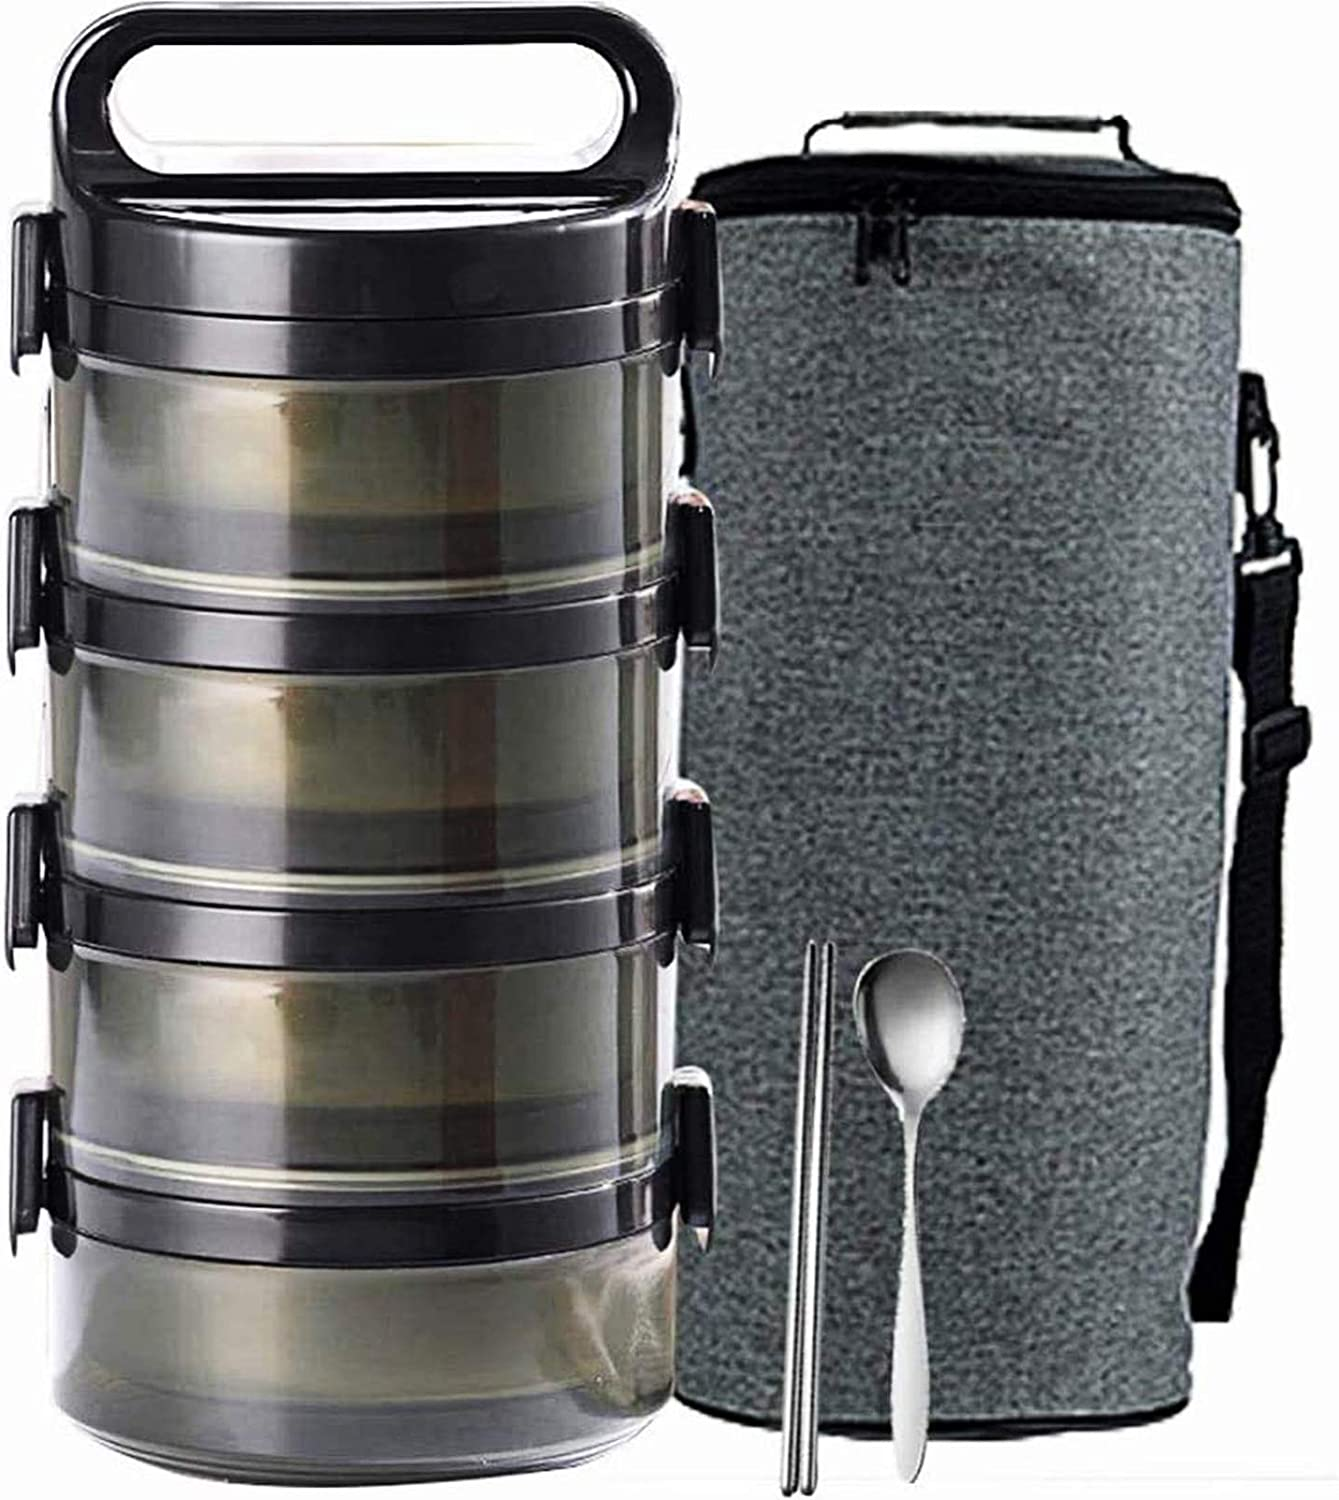 TOPLDSM Stackable Bento Popular brand Lunch Shipping included Stainless Thermal Box Compartment